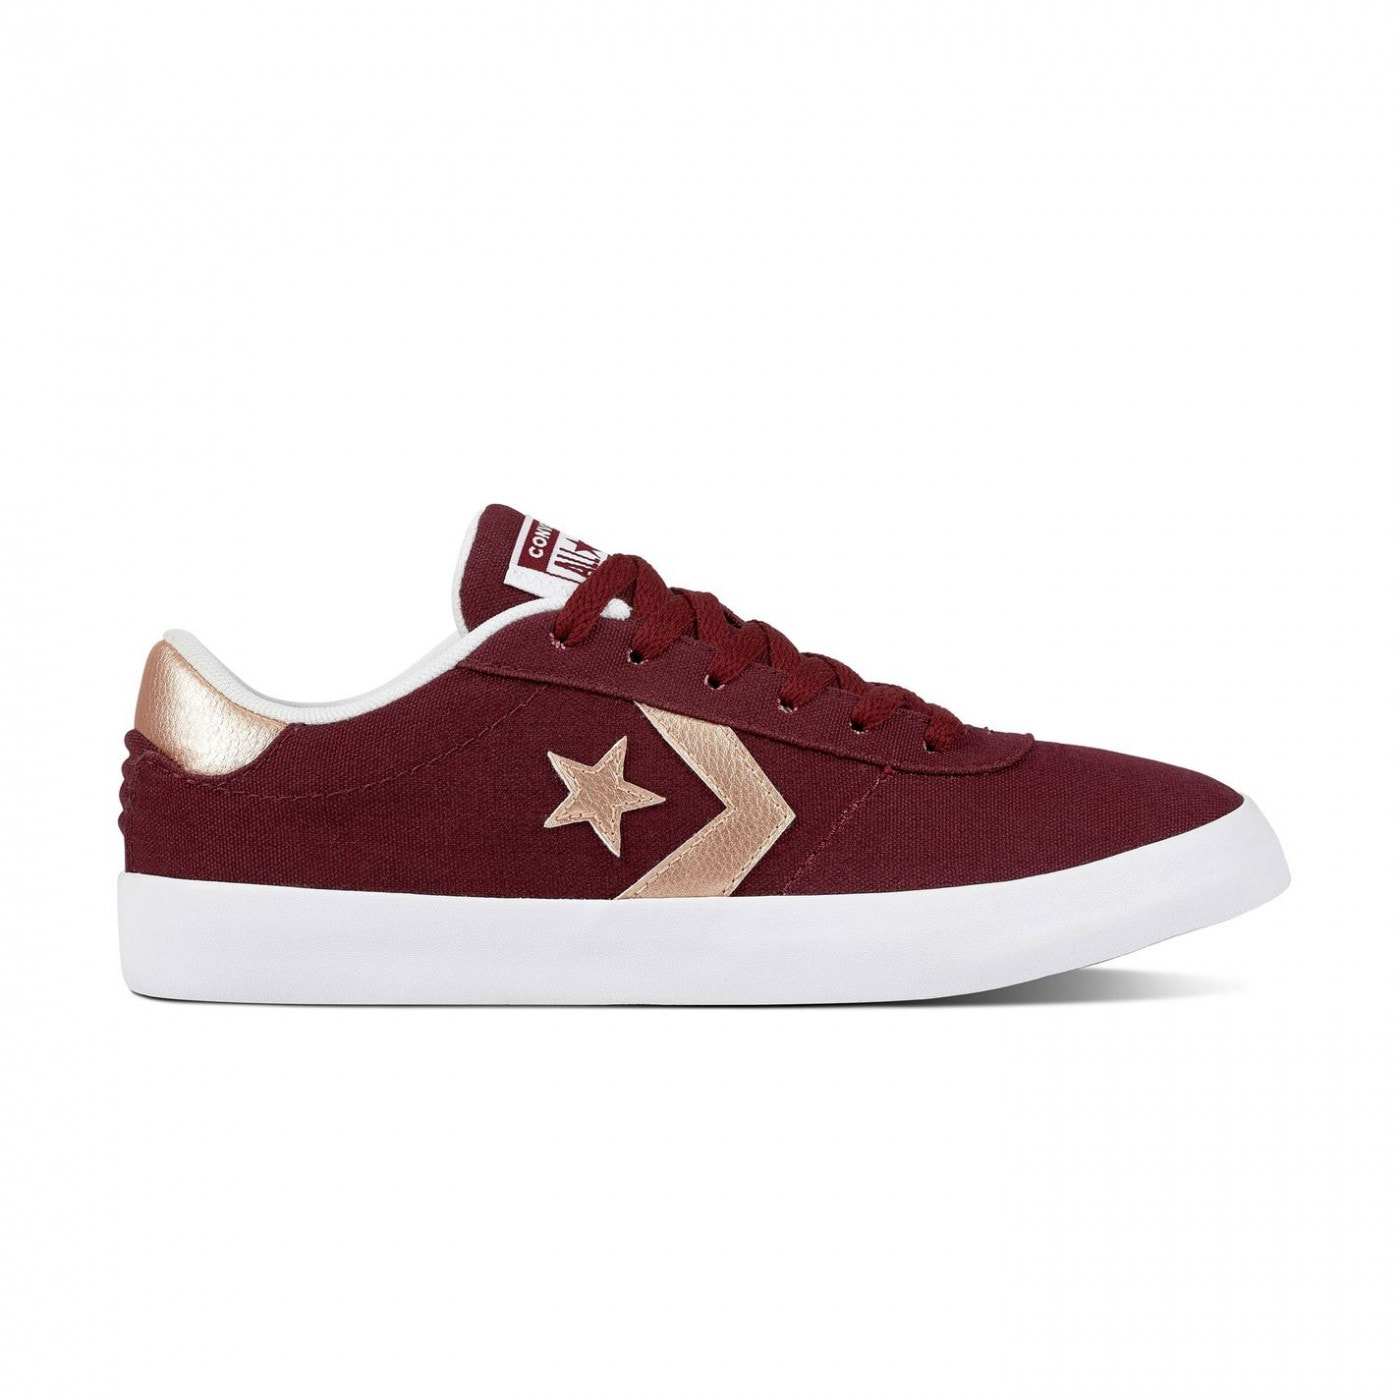 Converse Point Star Ox Shoes